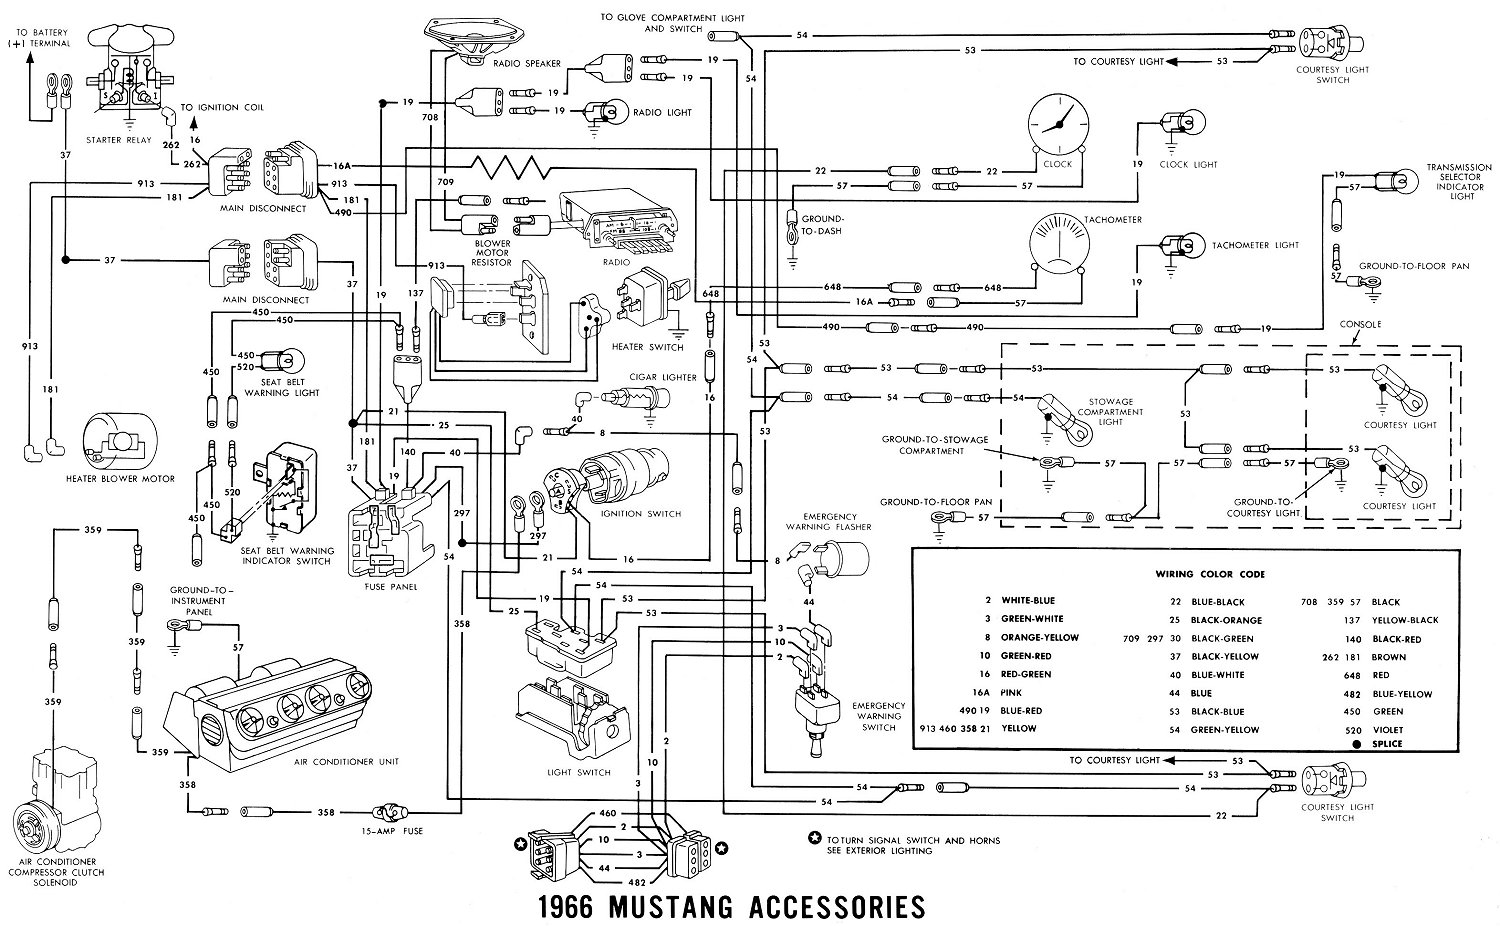 66acces1 1966 mustang wiring diagrams average joe restoration 1966 mustang fog light wiring diagram at soozxer.org